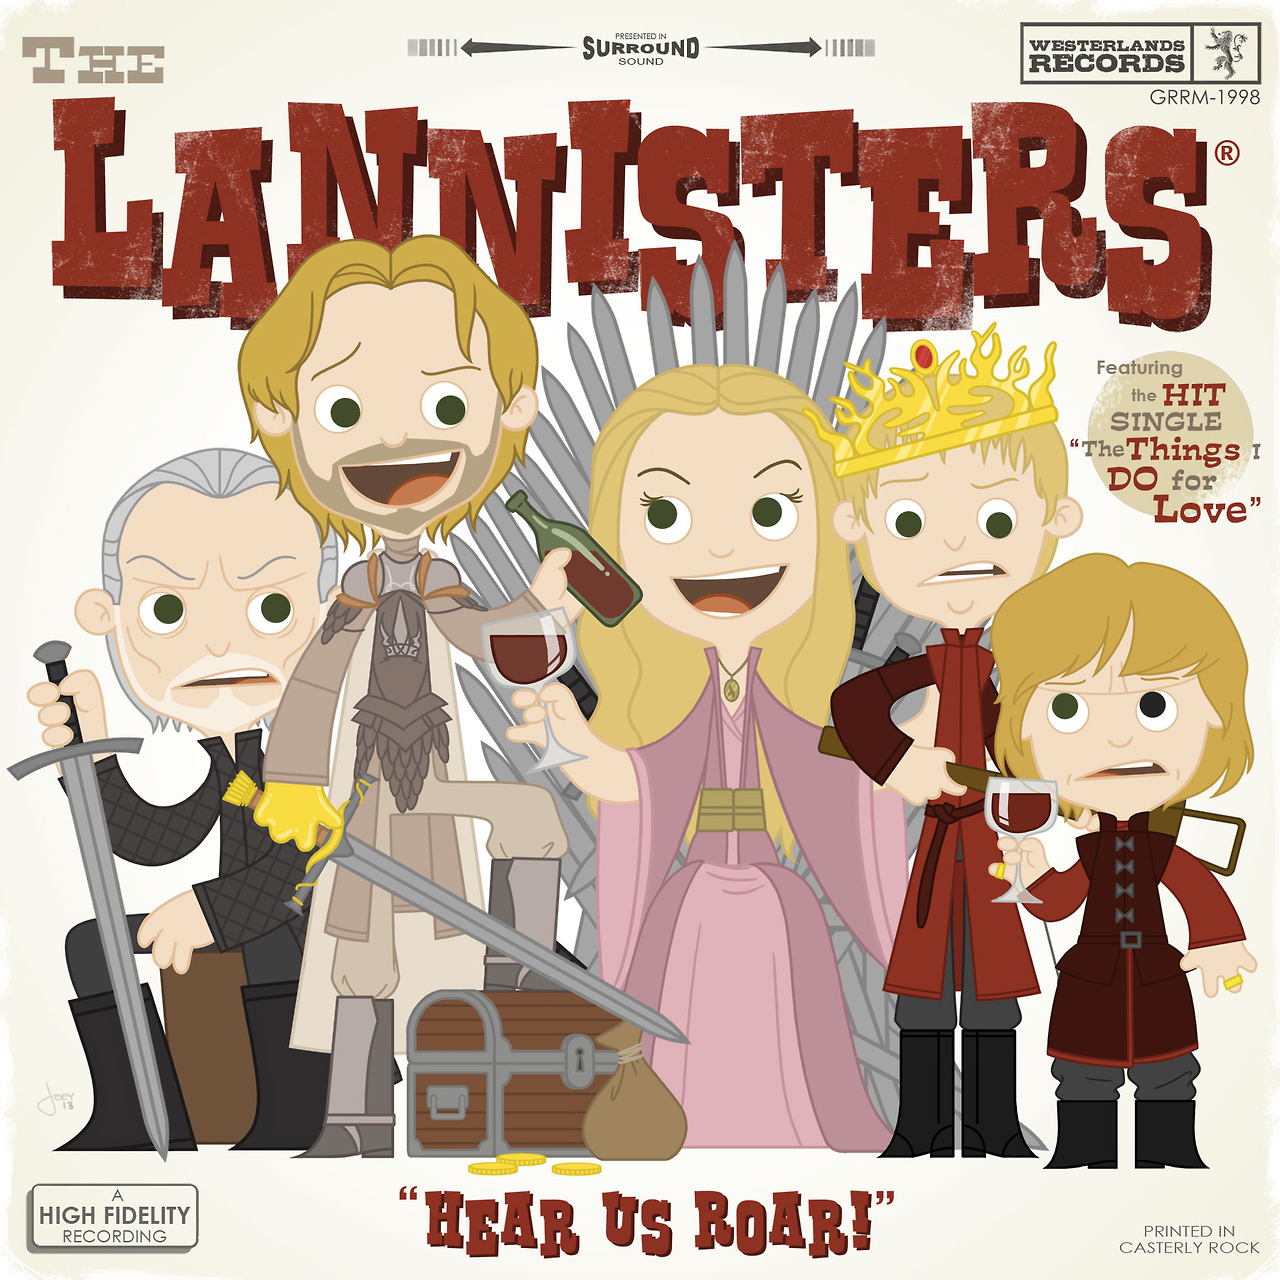 Spiotto the lannisters